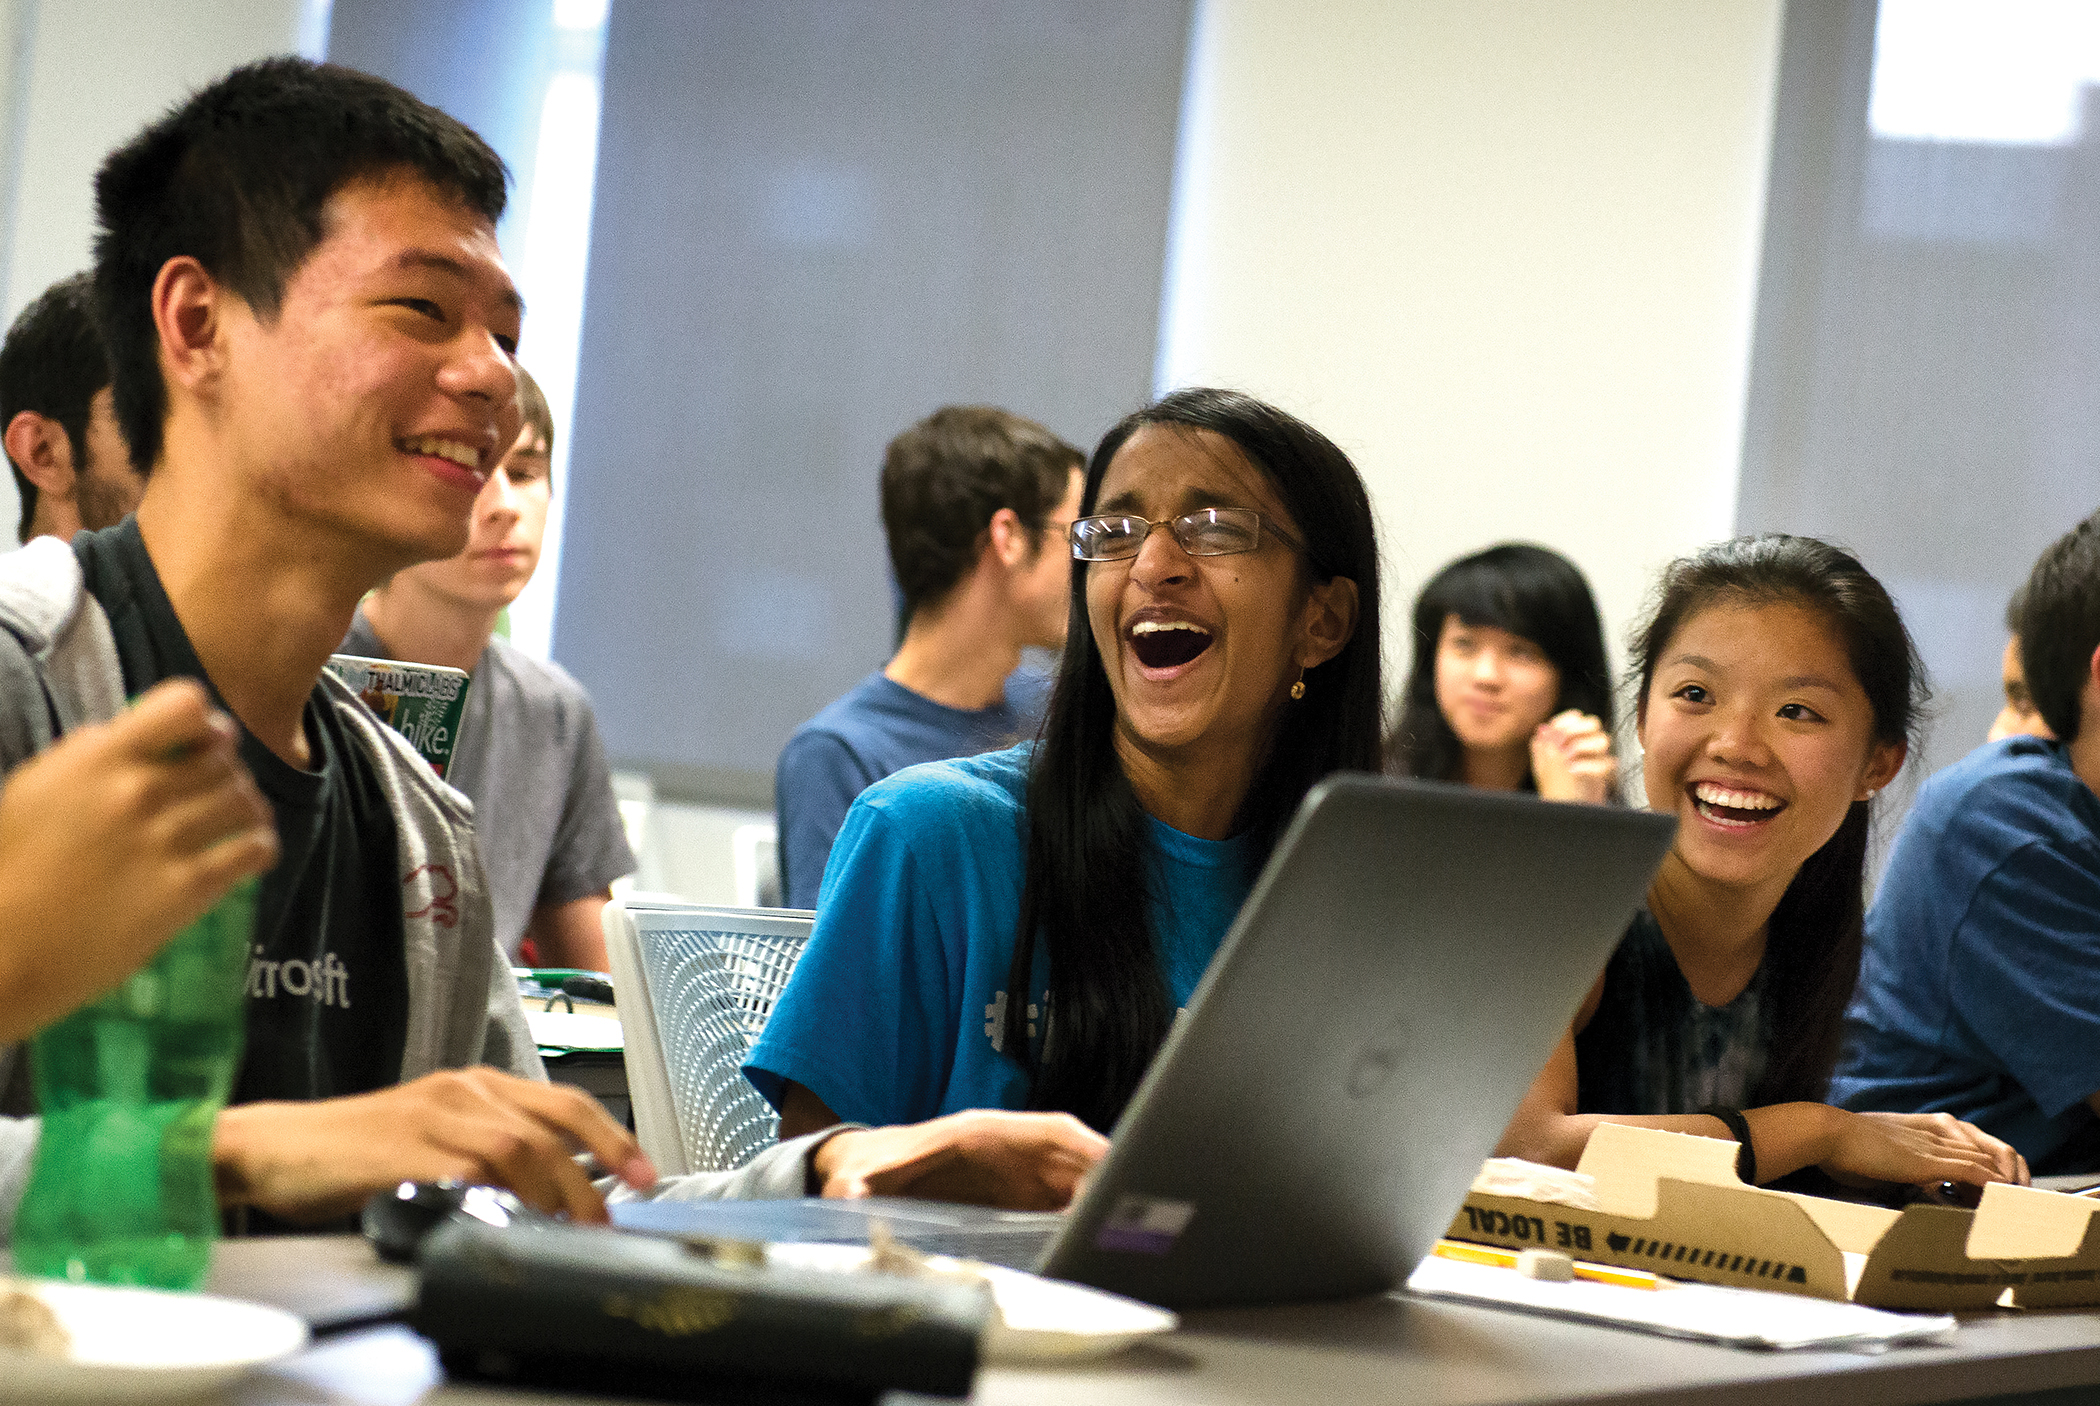 Students in Professor Calvin Lin's classes learn programming skills using digital 'critters' that compete against one another in a simulated environment.